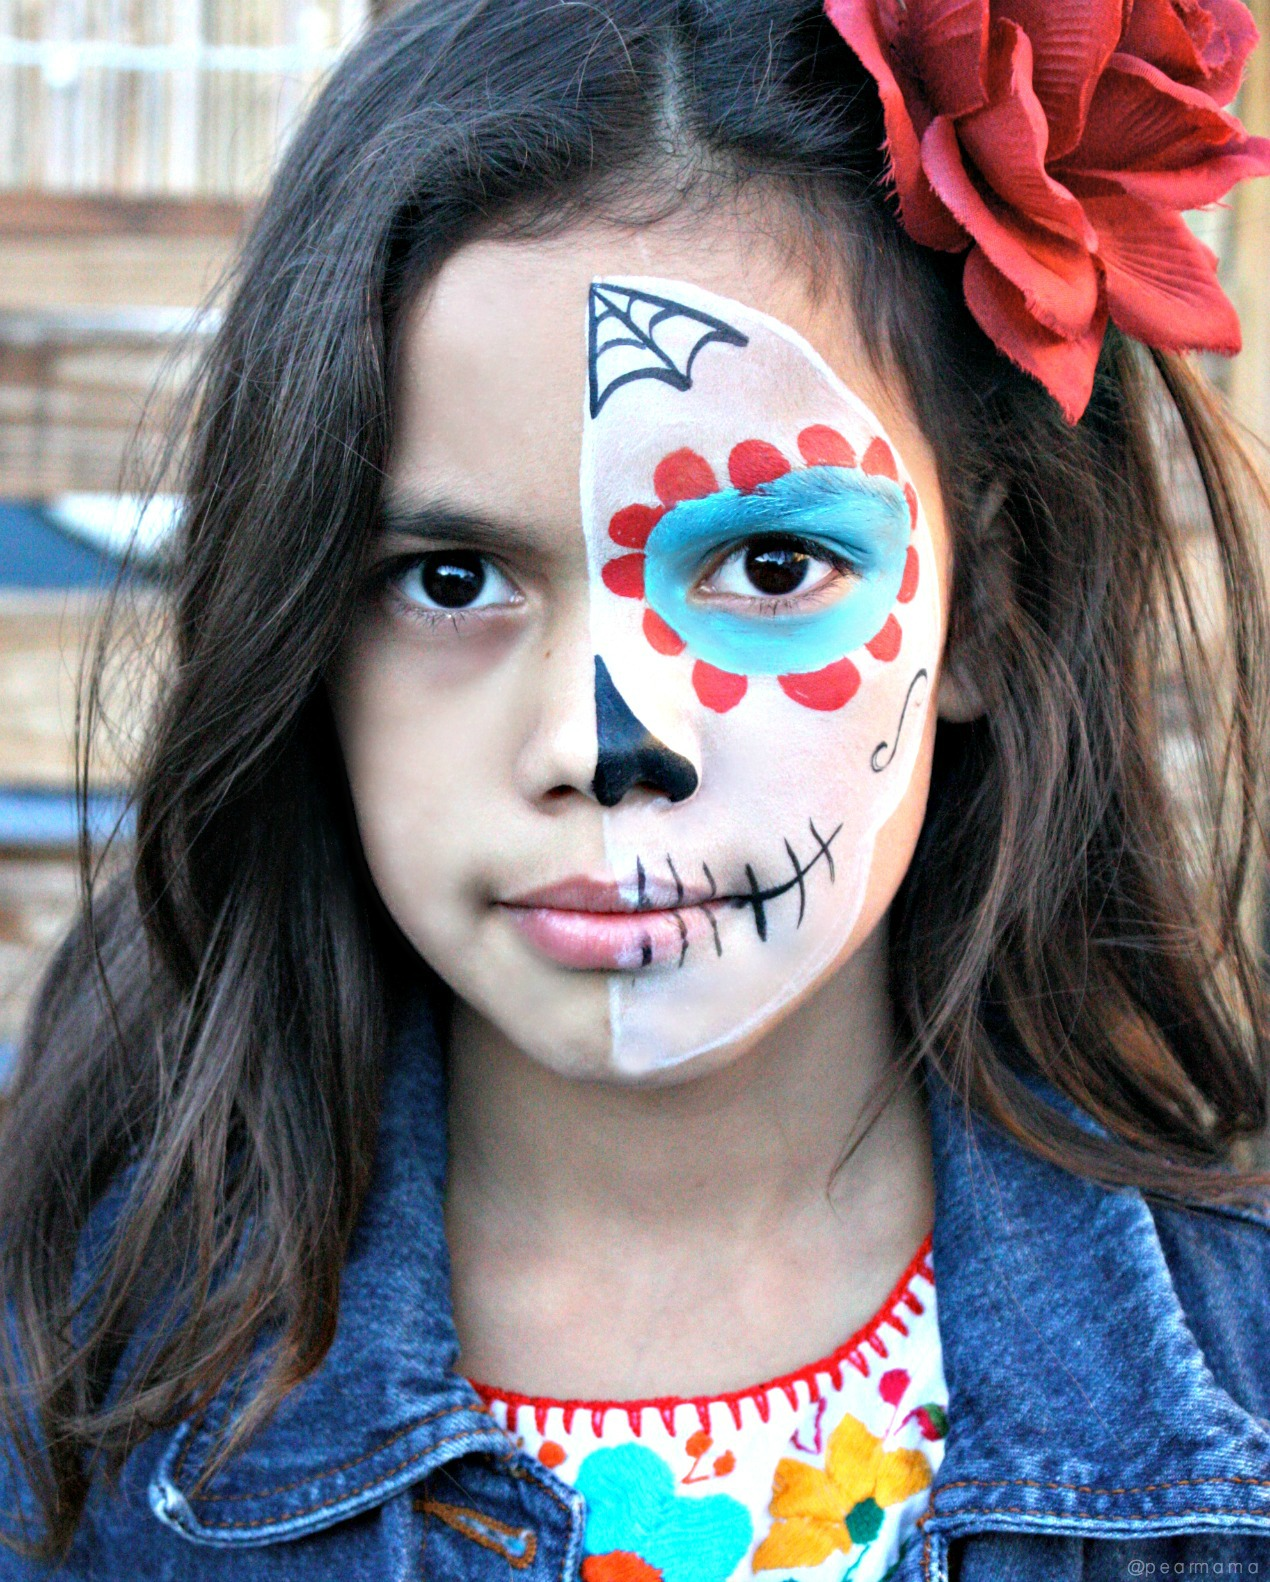 Watch this YouTube video and learn how to paint the perfect sugar skull makeup on your child to celebrate Day of the Dead.